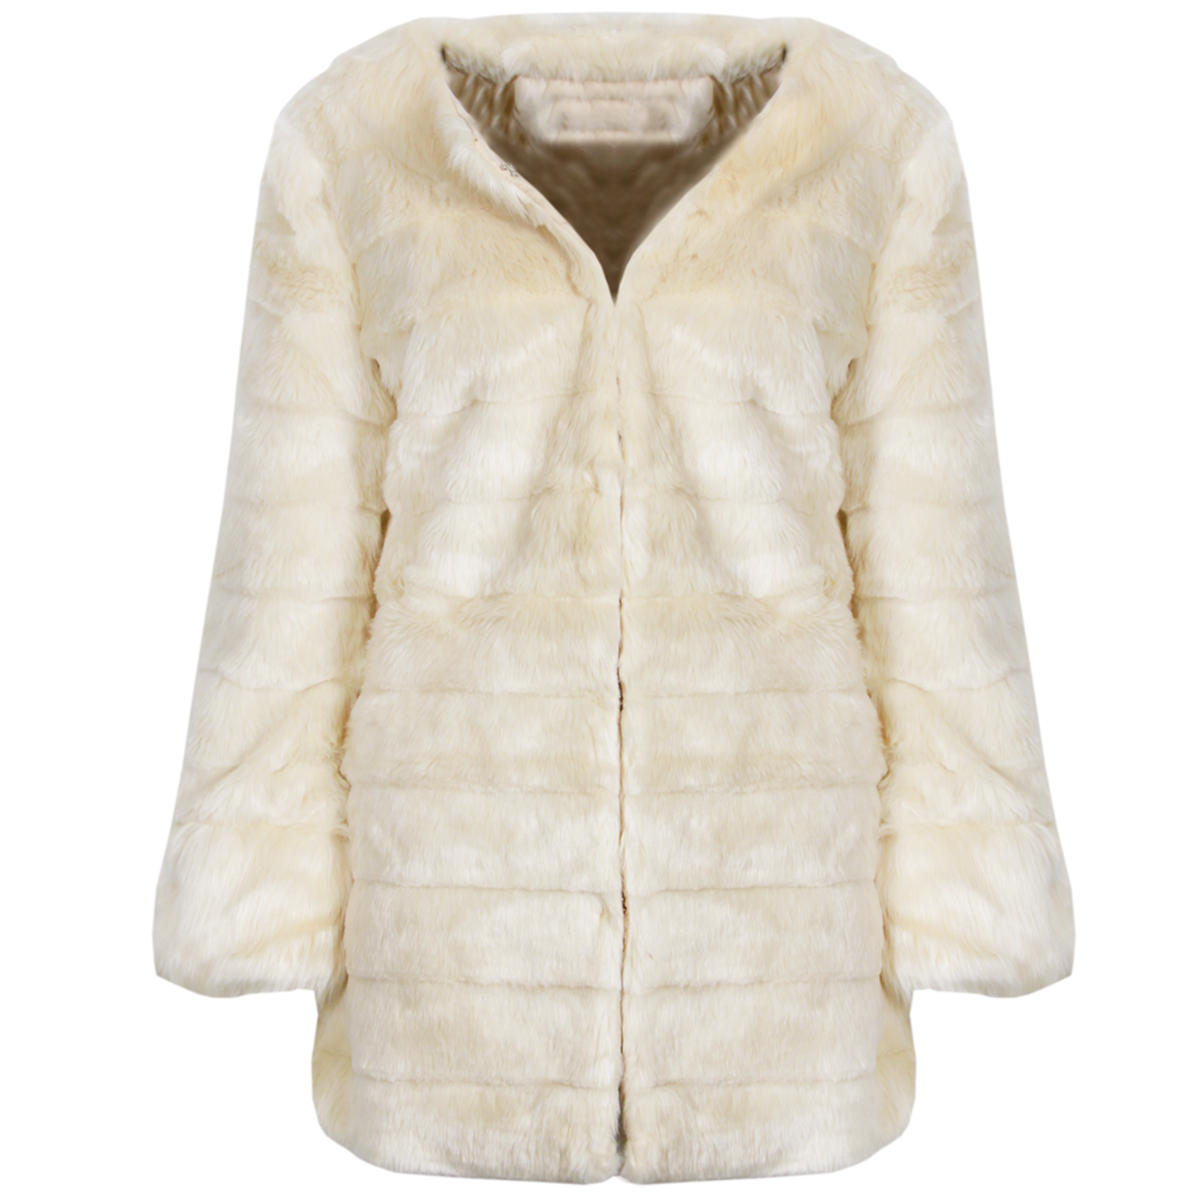 Cream Faux Fur Coat Preview